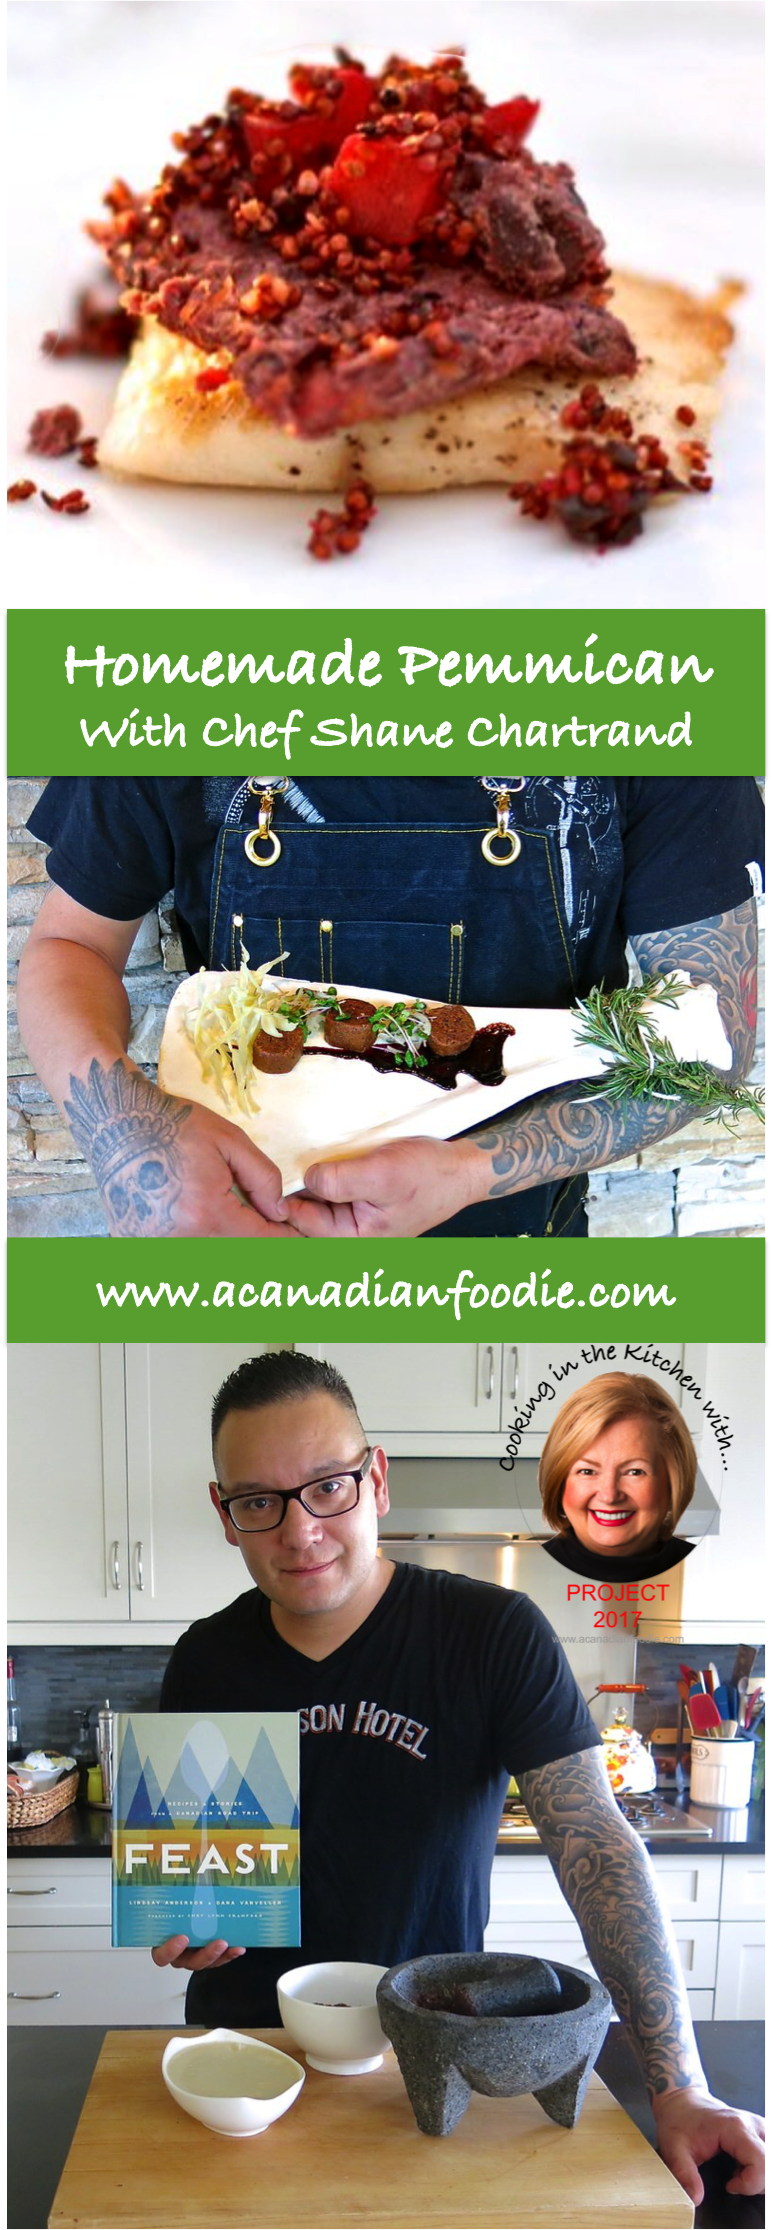 Homemade Pemmican: Canada's First Energy Bar! Valerie in the Kitchen with Chef Shane Chartrand of Marrow, Progressive Indigenous Cuisine with step-by-step images. www.acanadianfoodie.com #ACFValerieCookingwithYOU!